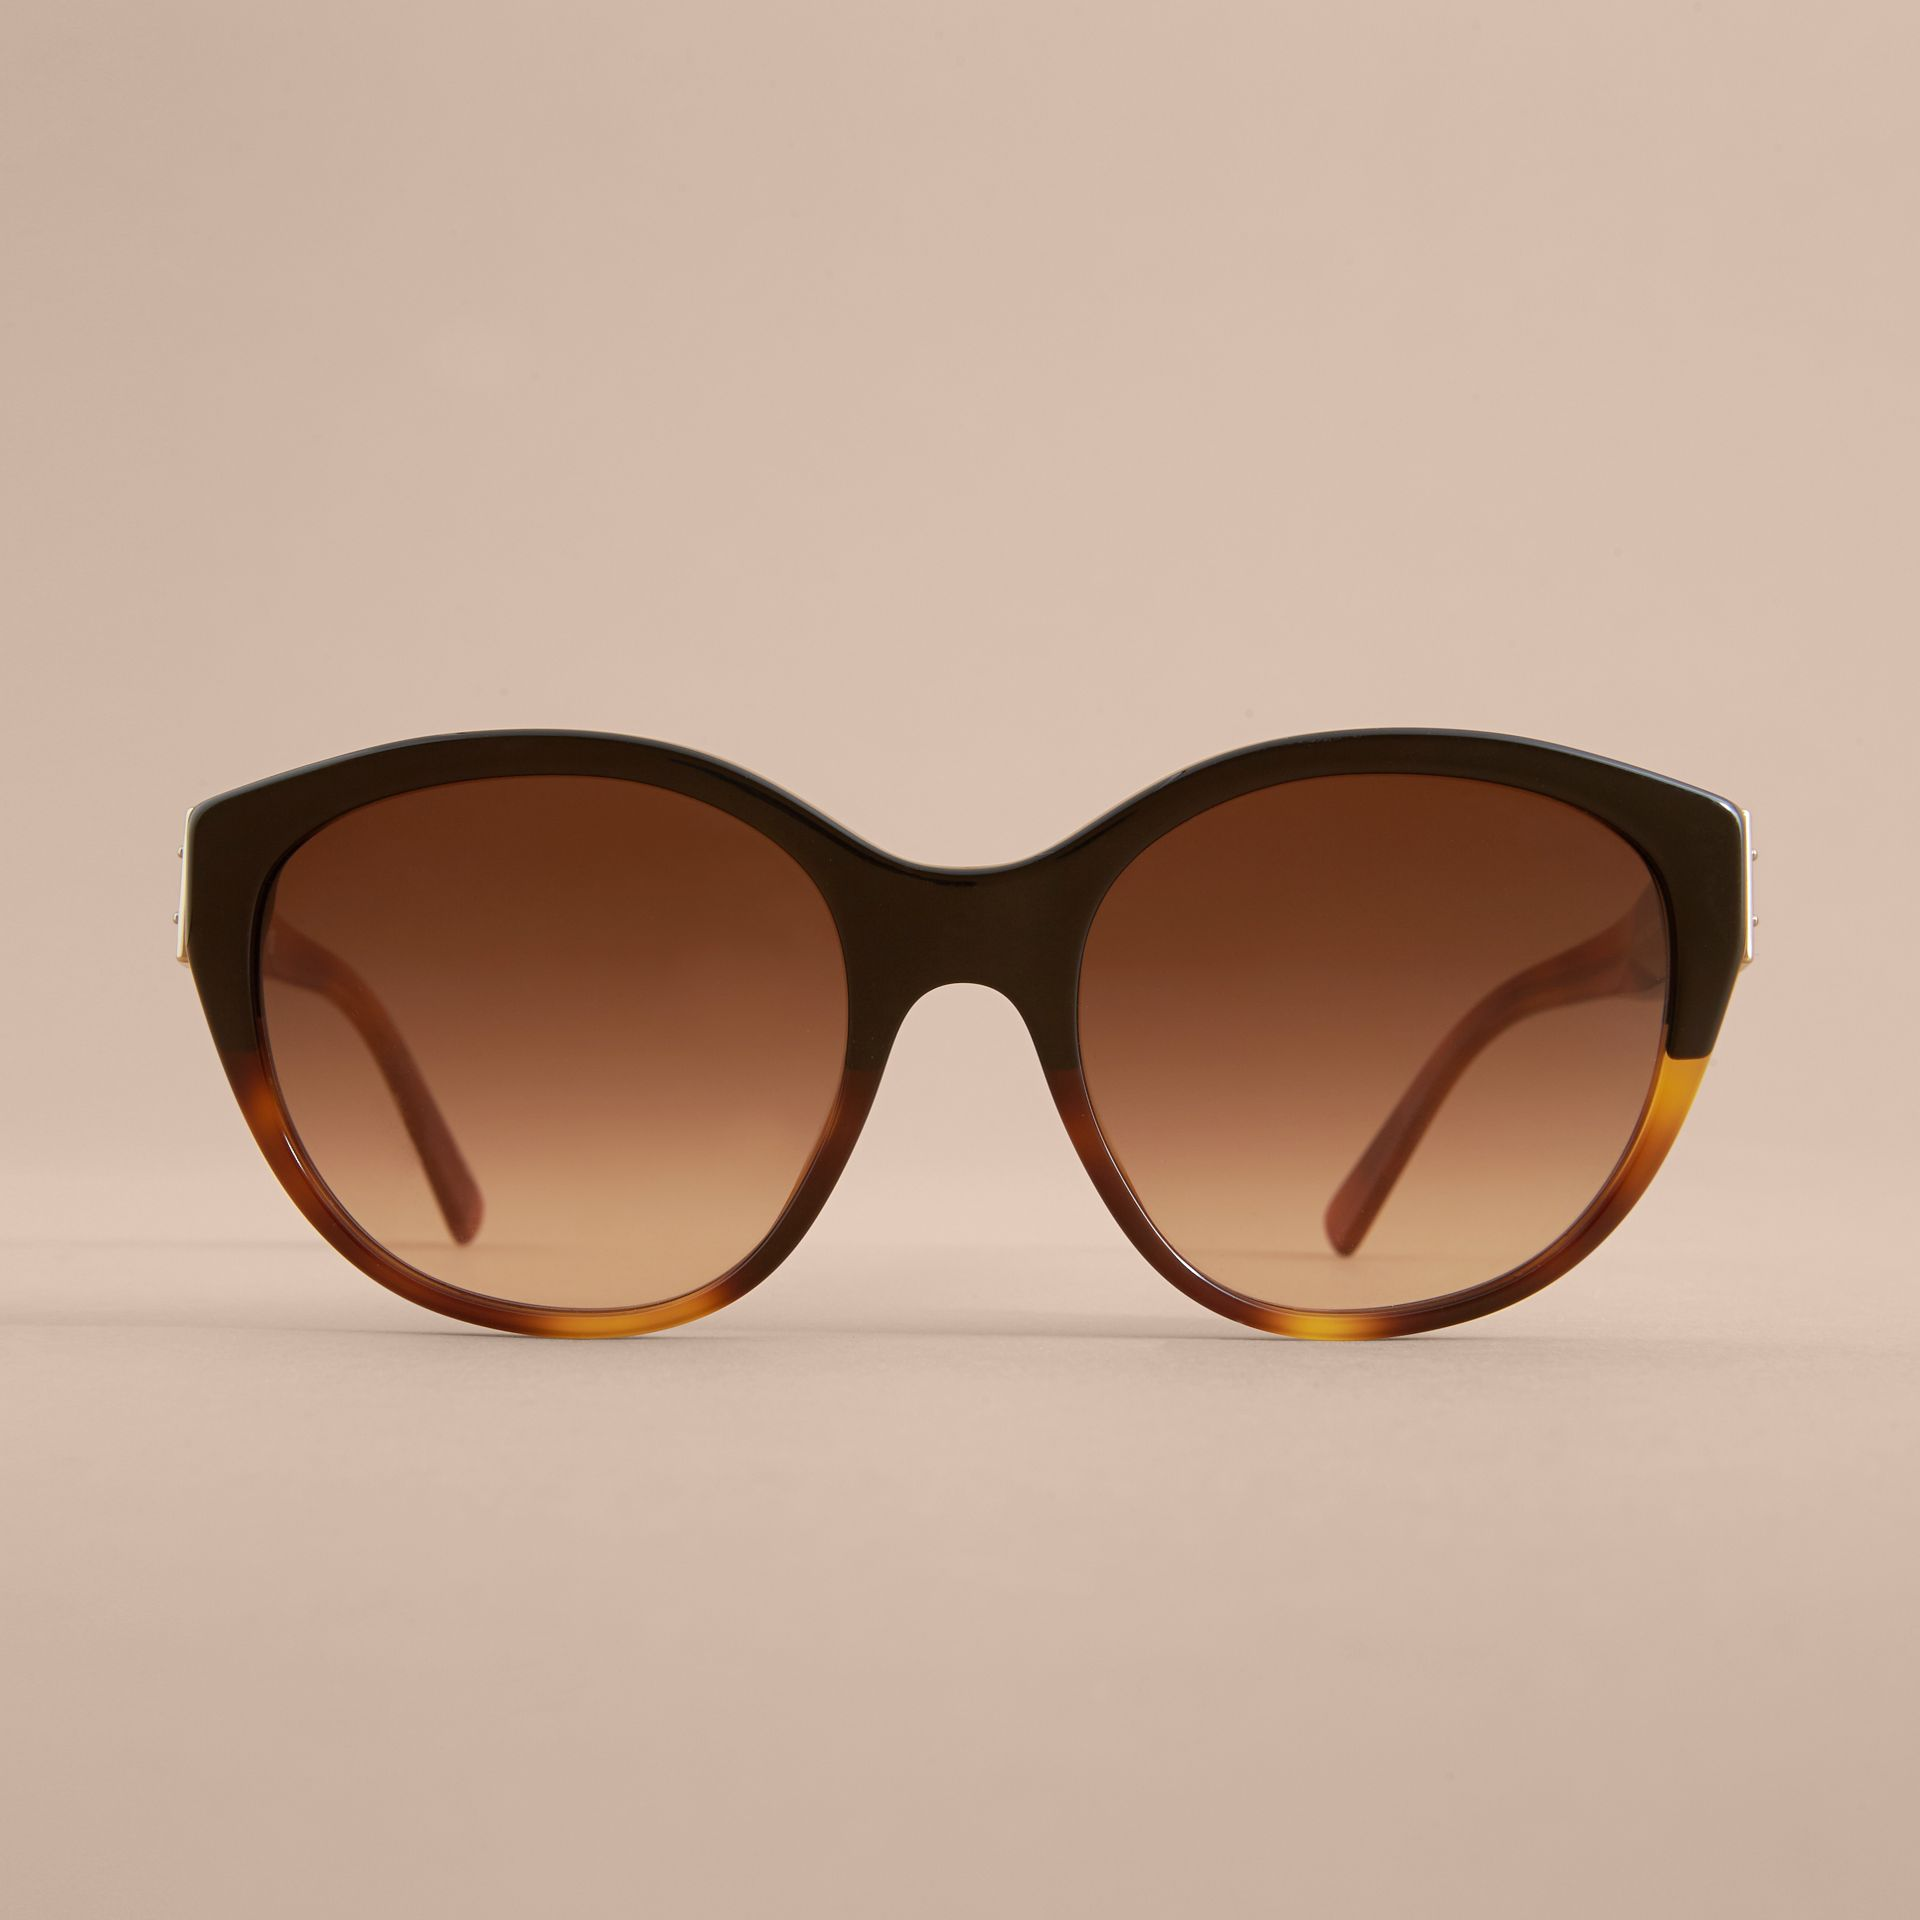 Buckle Detail Round Frame Sunglasses in Tortoise Amber - Women | Burberry United States - gallery image 3